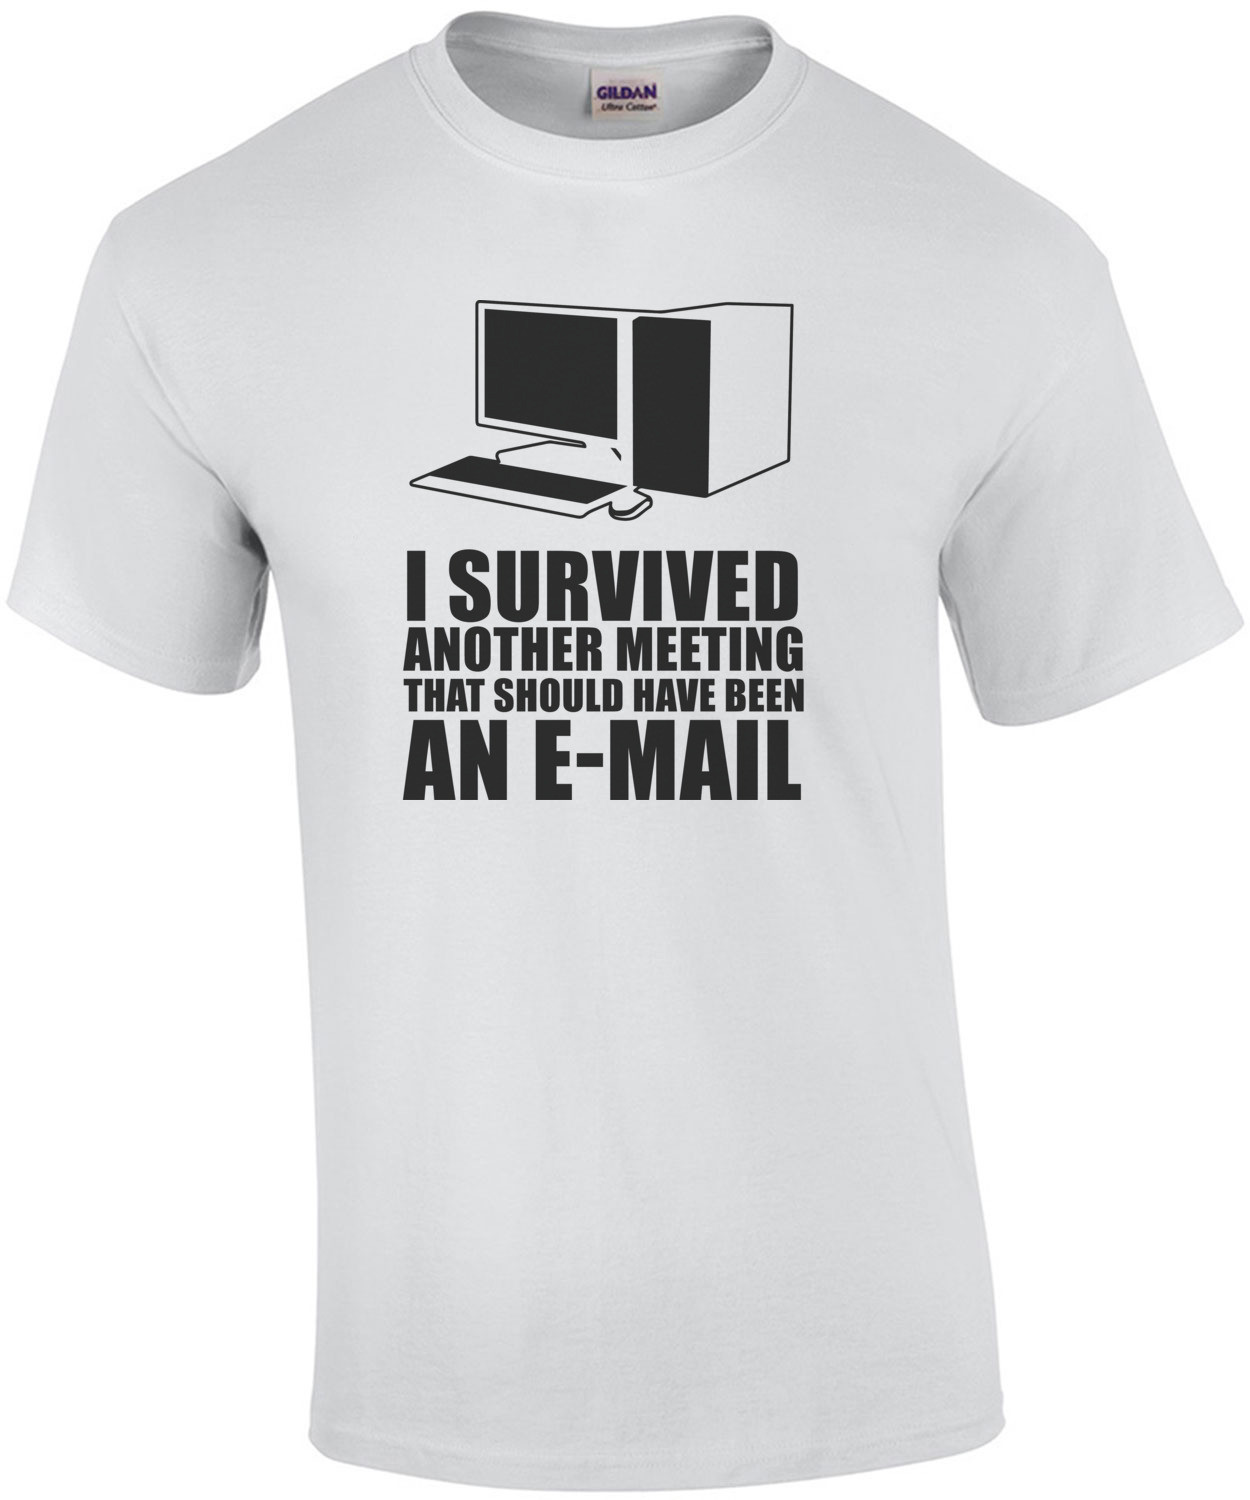 I survived another meeting that should have been an e-mail t-shirt